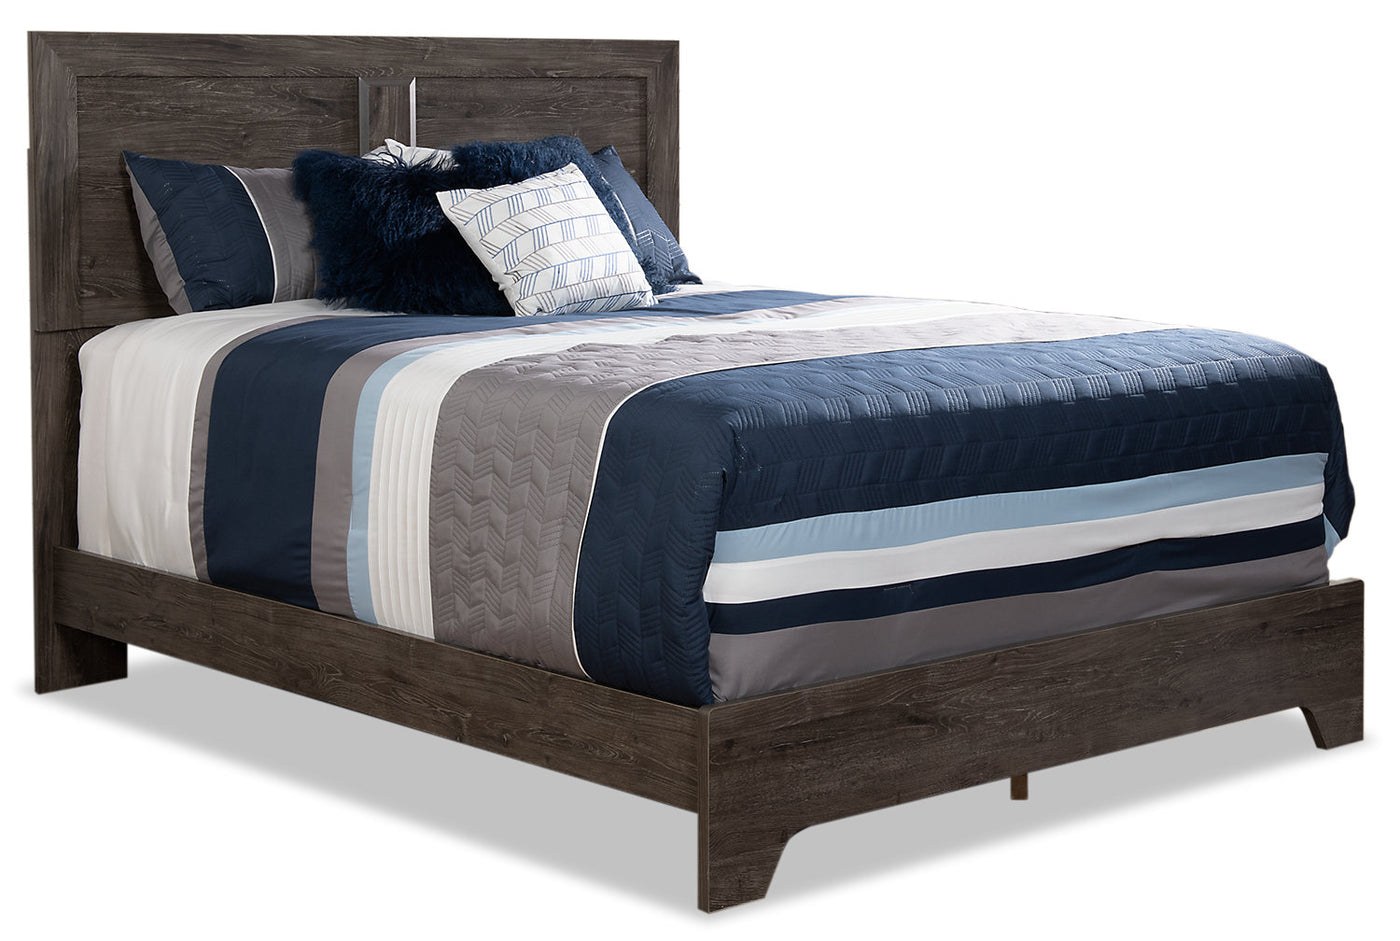 online retailer ffc88 a085f Yorkdale Grey Queen Panel Bed